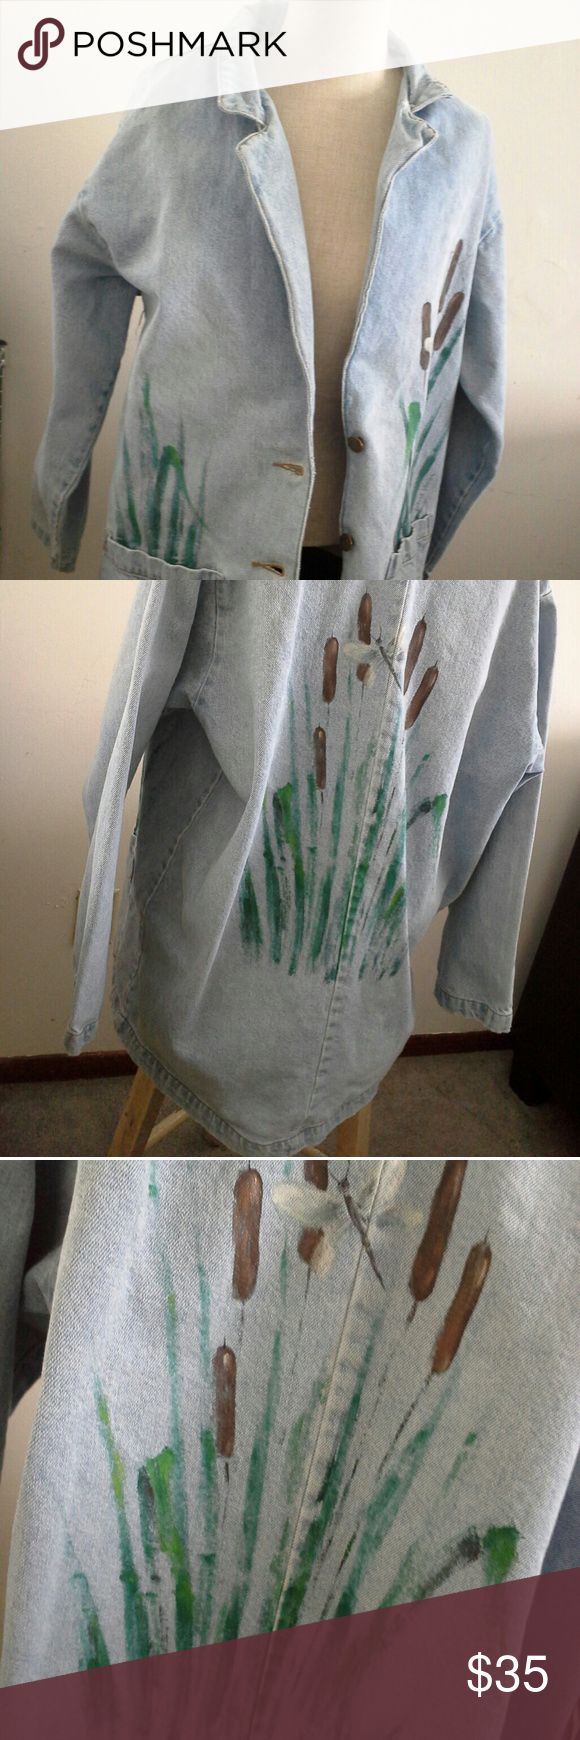 Women's Sun Belt Denim Jacket Good Condition, No Flaws, Rips, Tears or Stains 100% Cotton *** OFFER NEGOITIABLE  Measurment Picture Sunbelt Jackets & Coats Jean Jackets